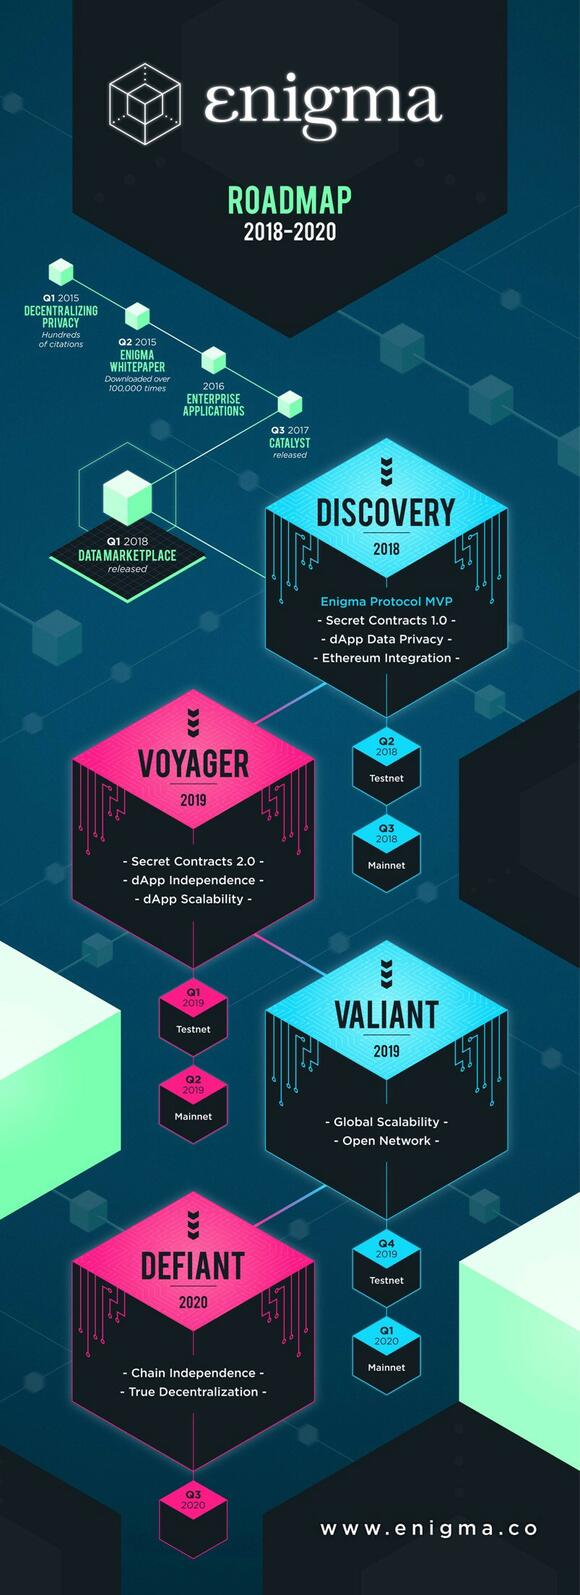 Roadmap Enigma